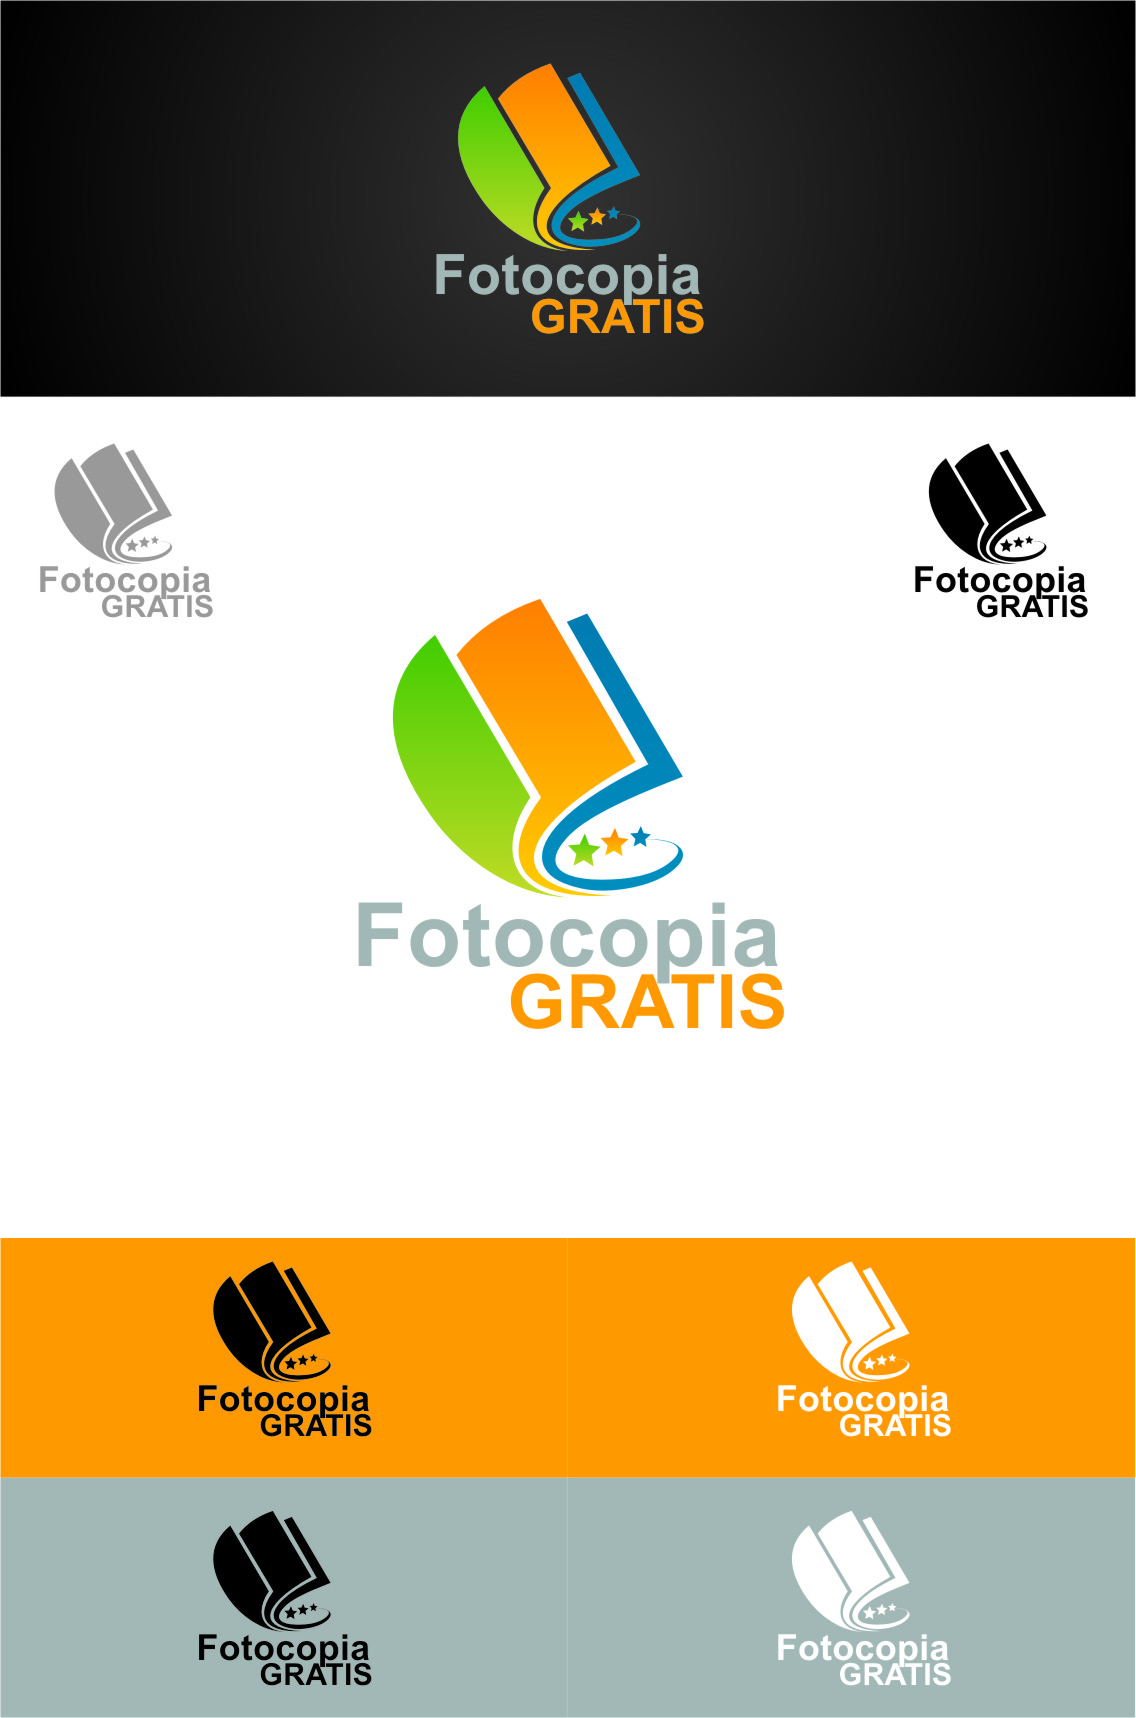 Logo Design by RasYa Muhammad Athaya - Entry No. 237 in the Logo Design Contest Inspiring Logo Design for Fotocopiagratis.